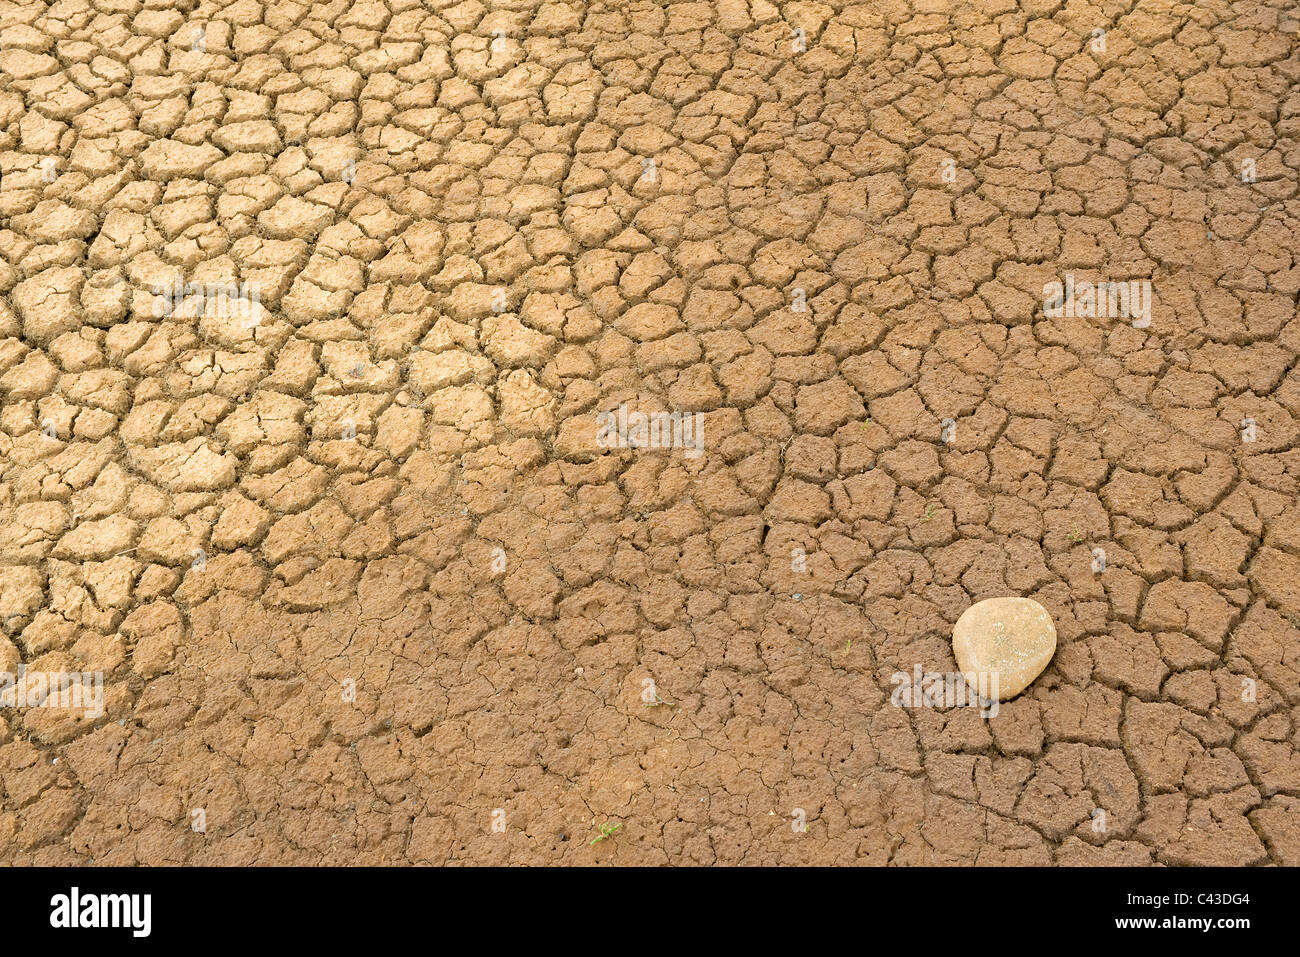 dry parched earth - Stock Image